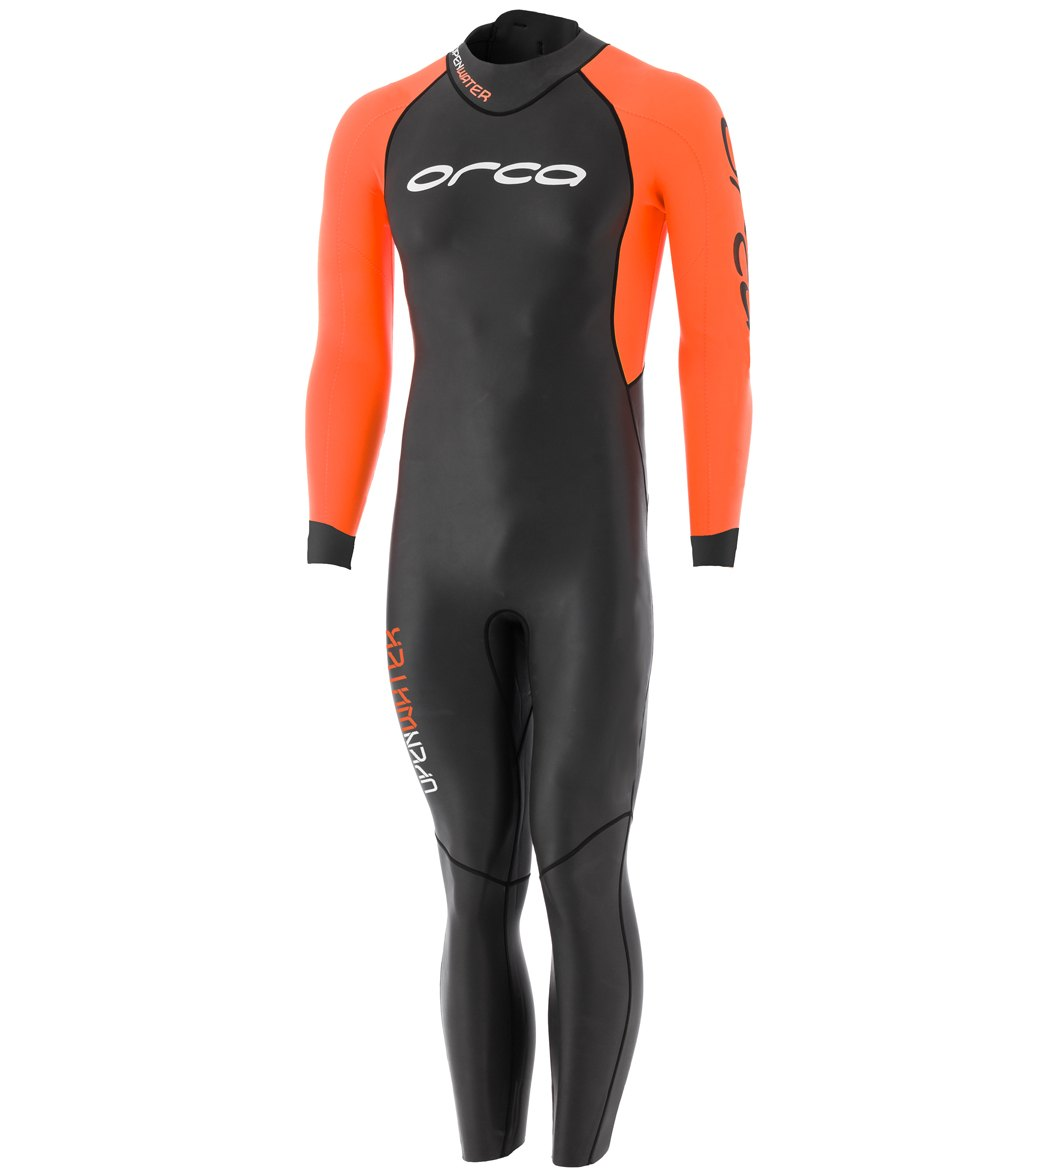 Orca Men s Open Water Fullsleeve Wetsuit at SwimOutlet.com - Free Shipping 9078a4d94